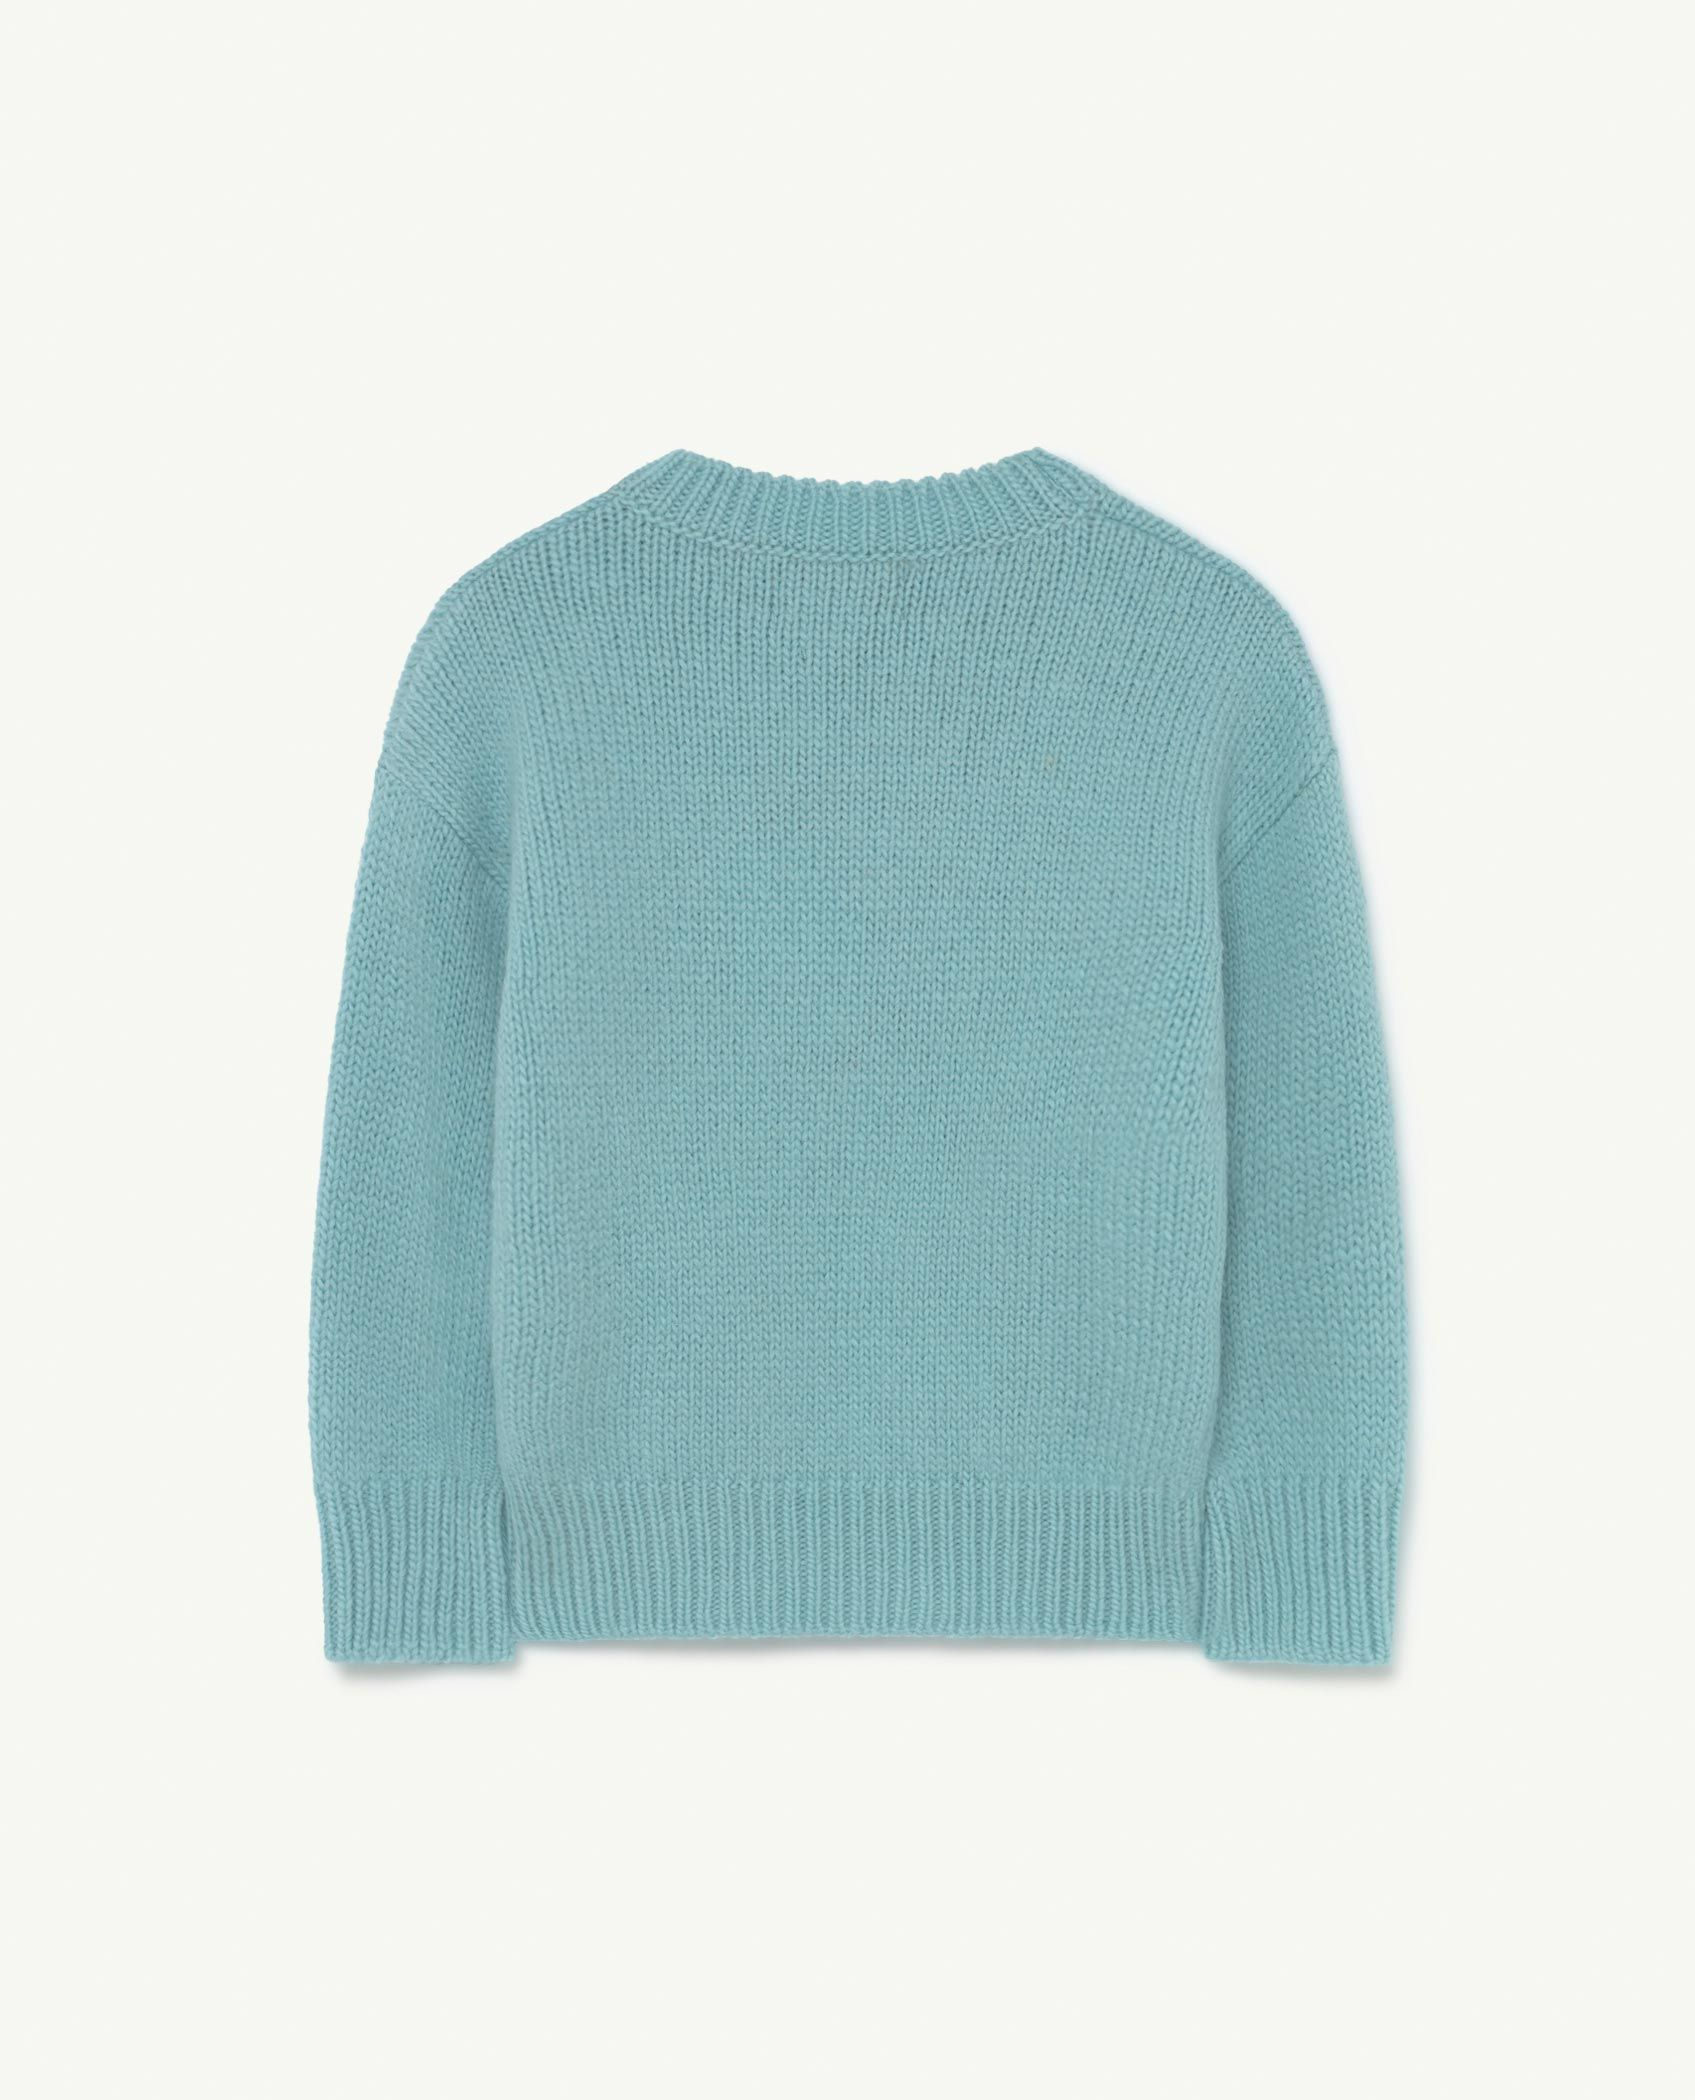 Soft Blue Space Bull Knit img-2